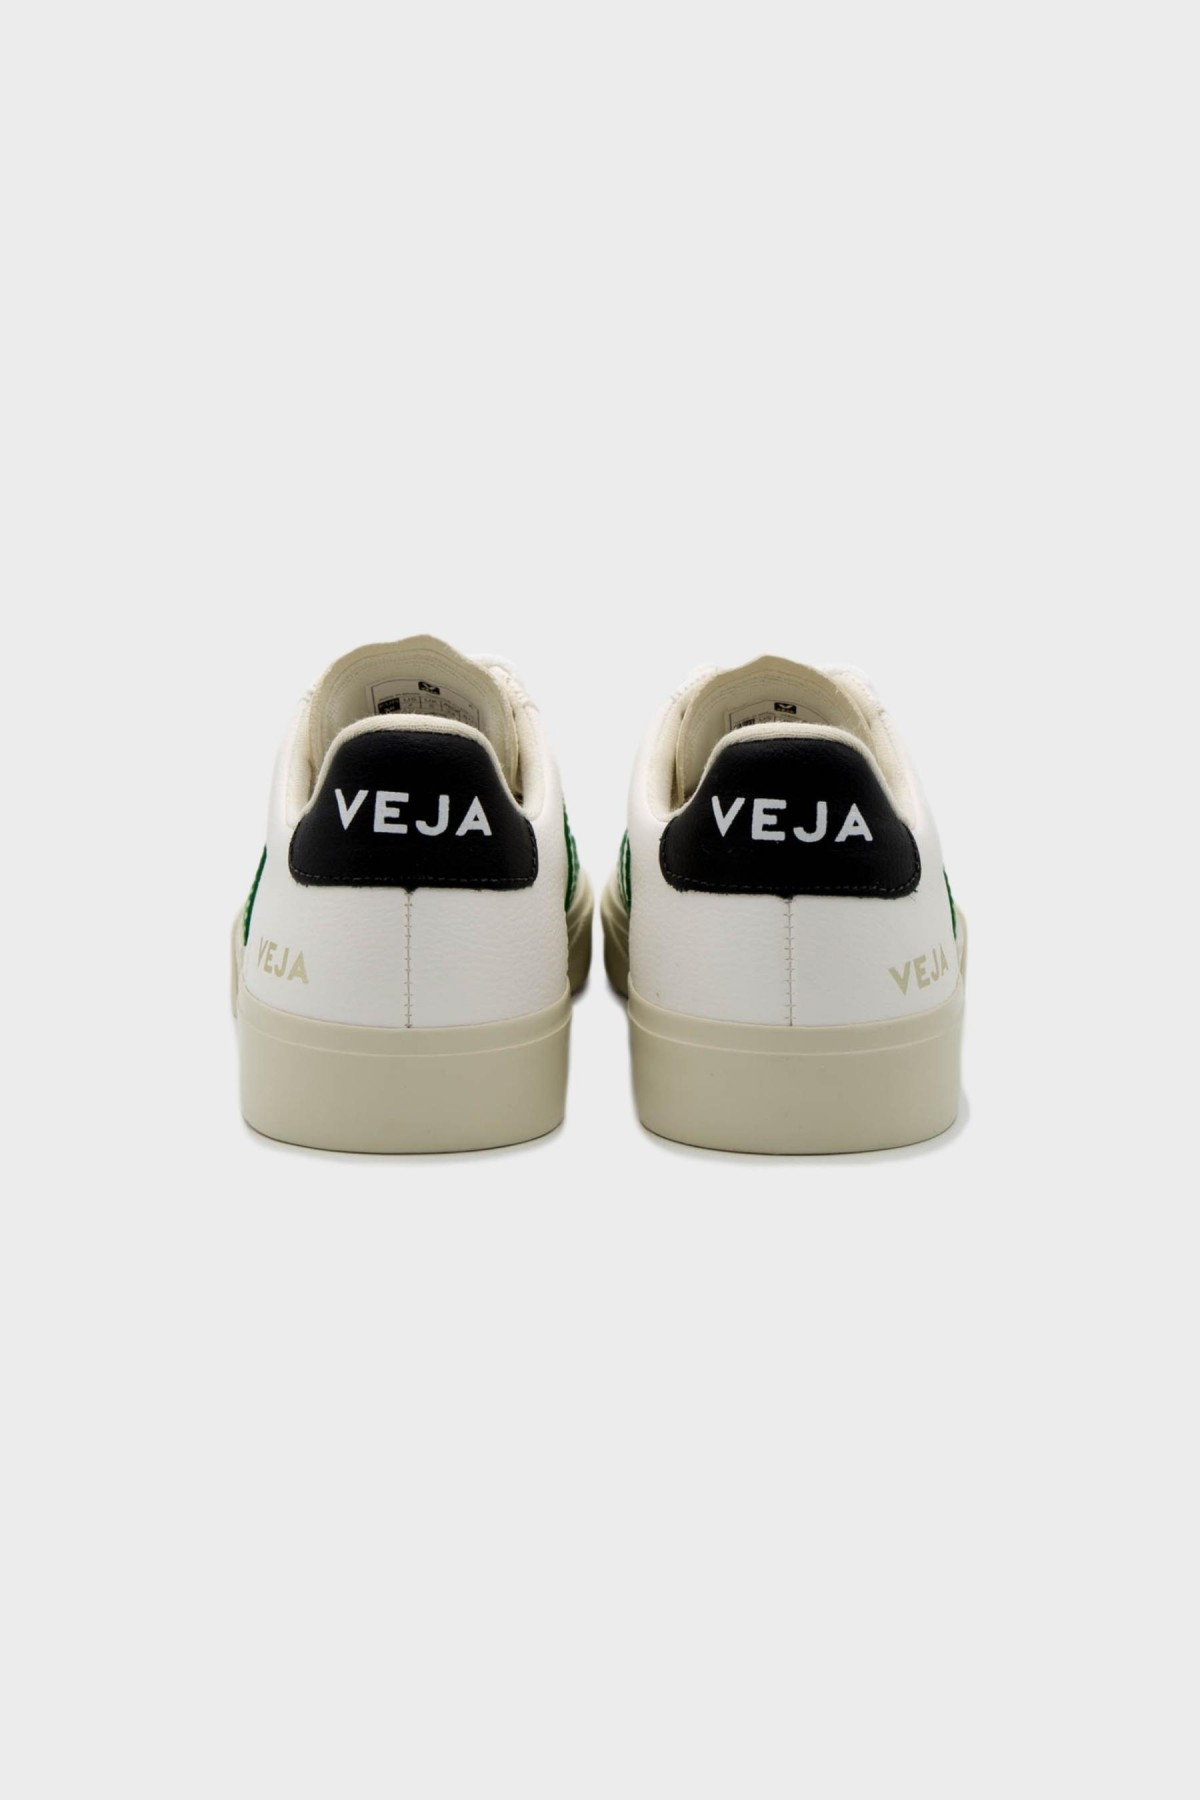 Veja Campo Chromefree Leather in Emeraude Black